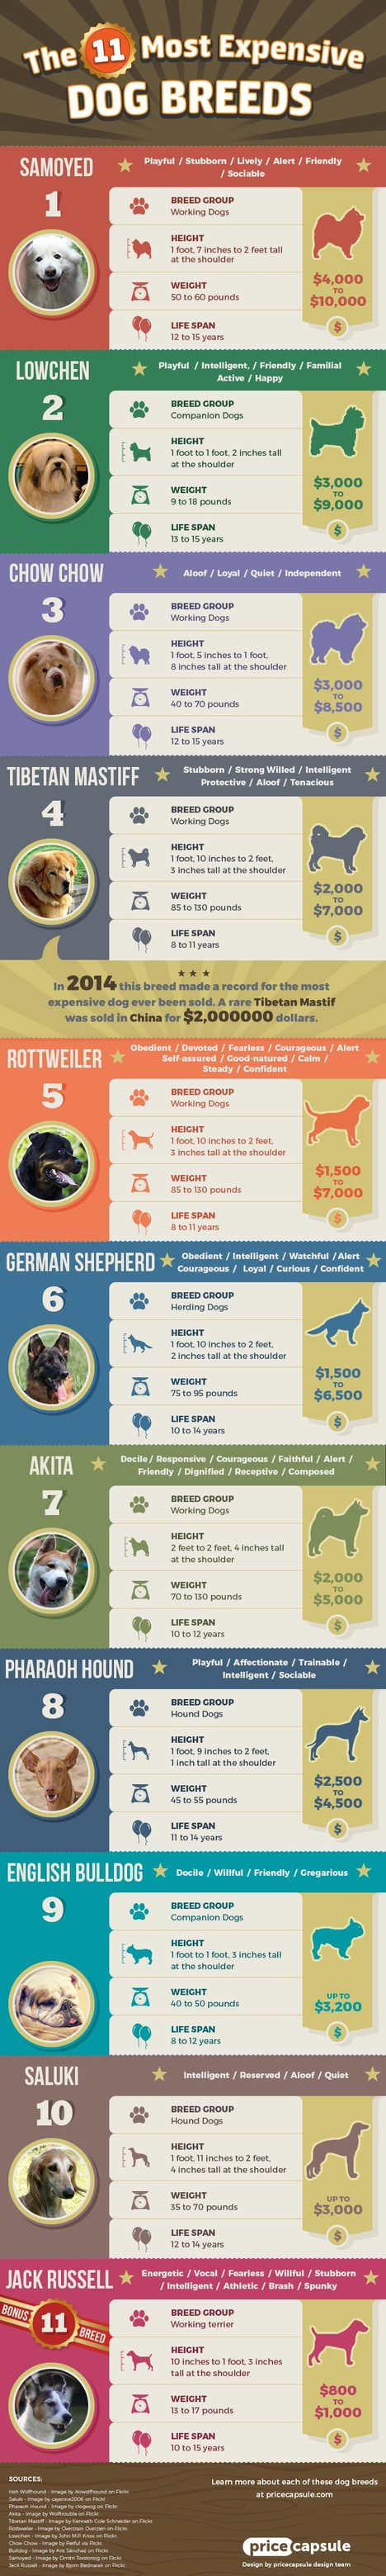 11 Most Expensive Dog Breeds